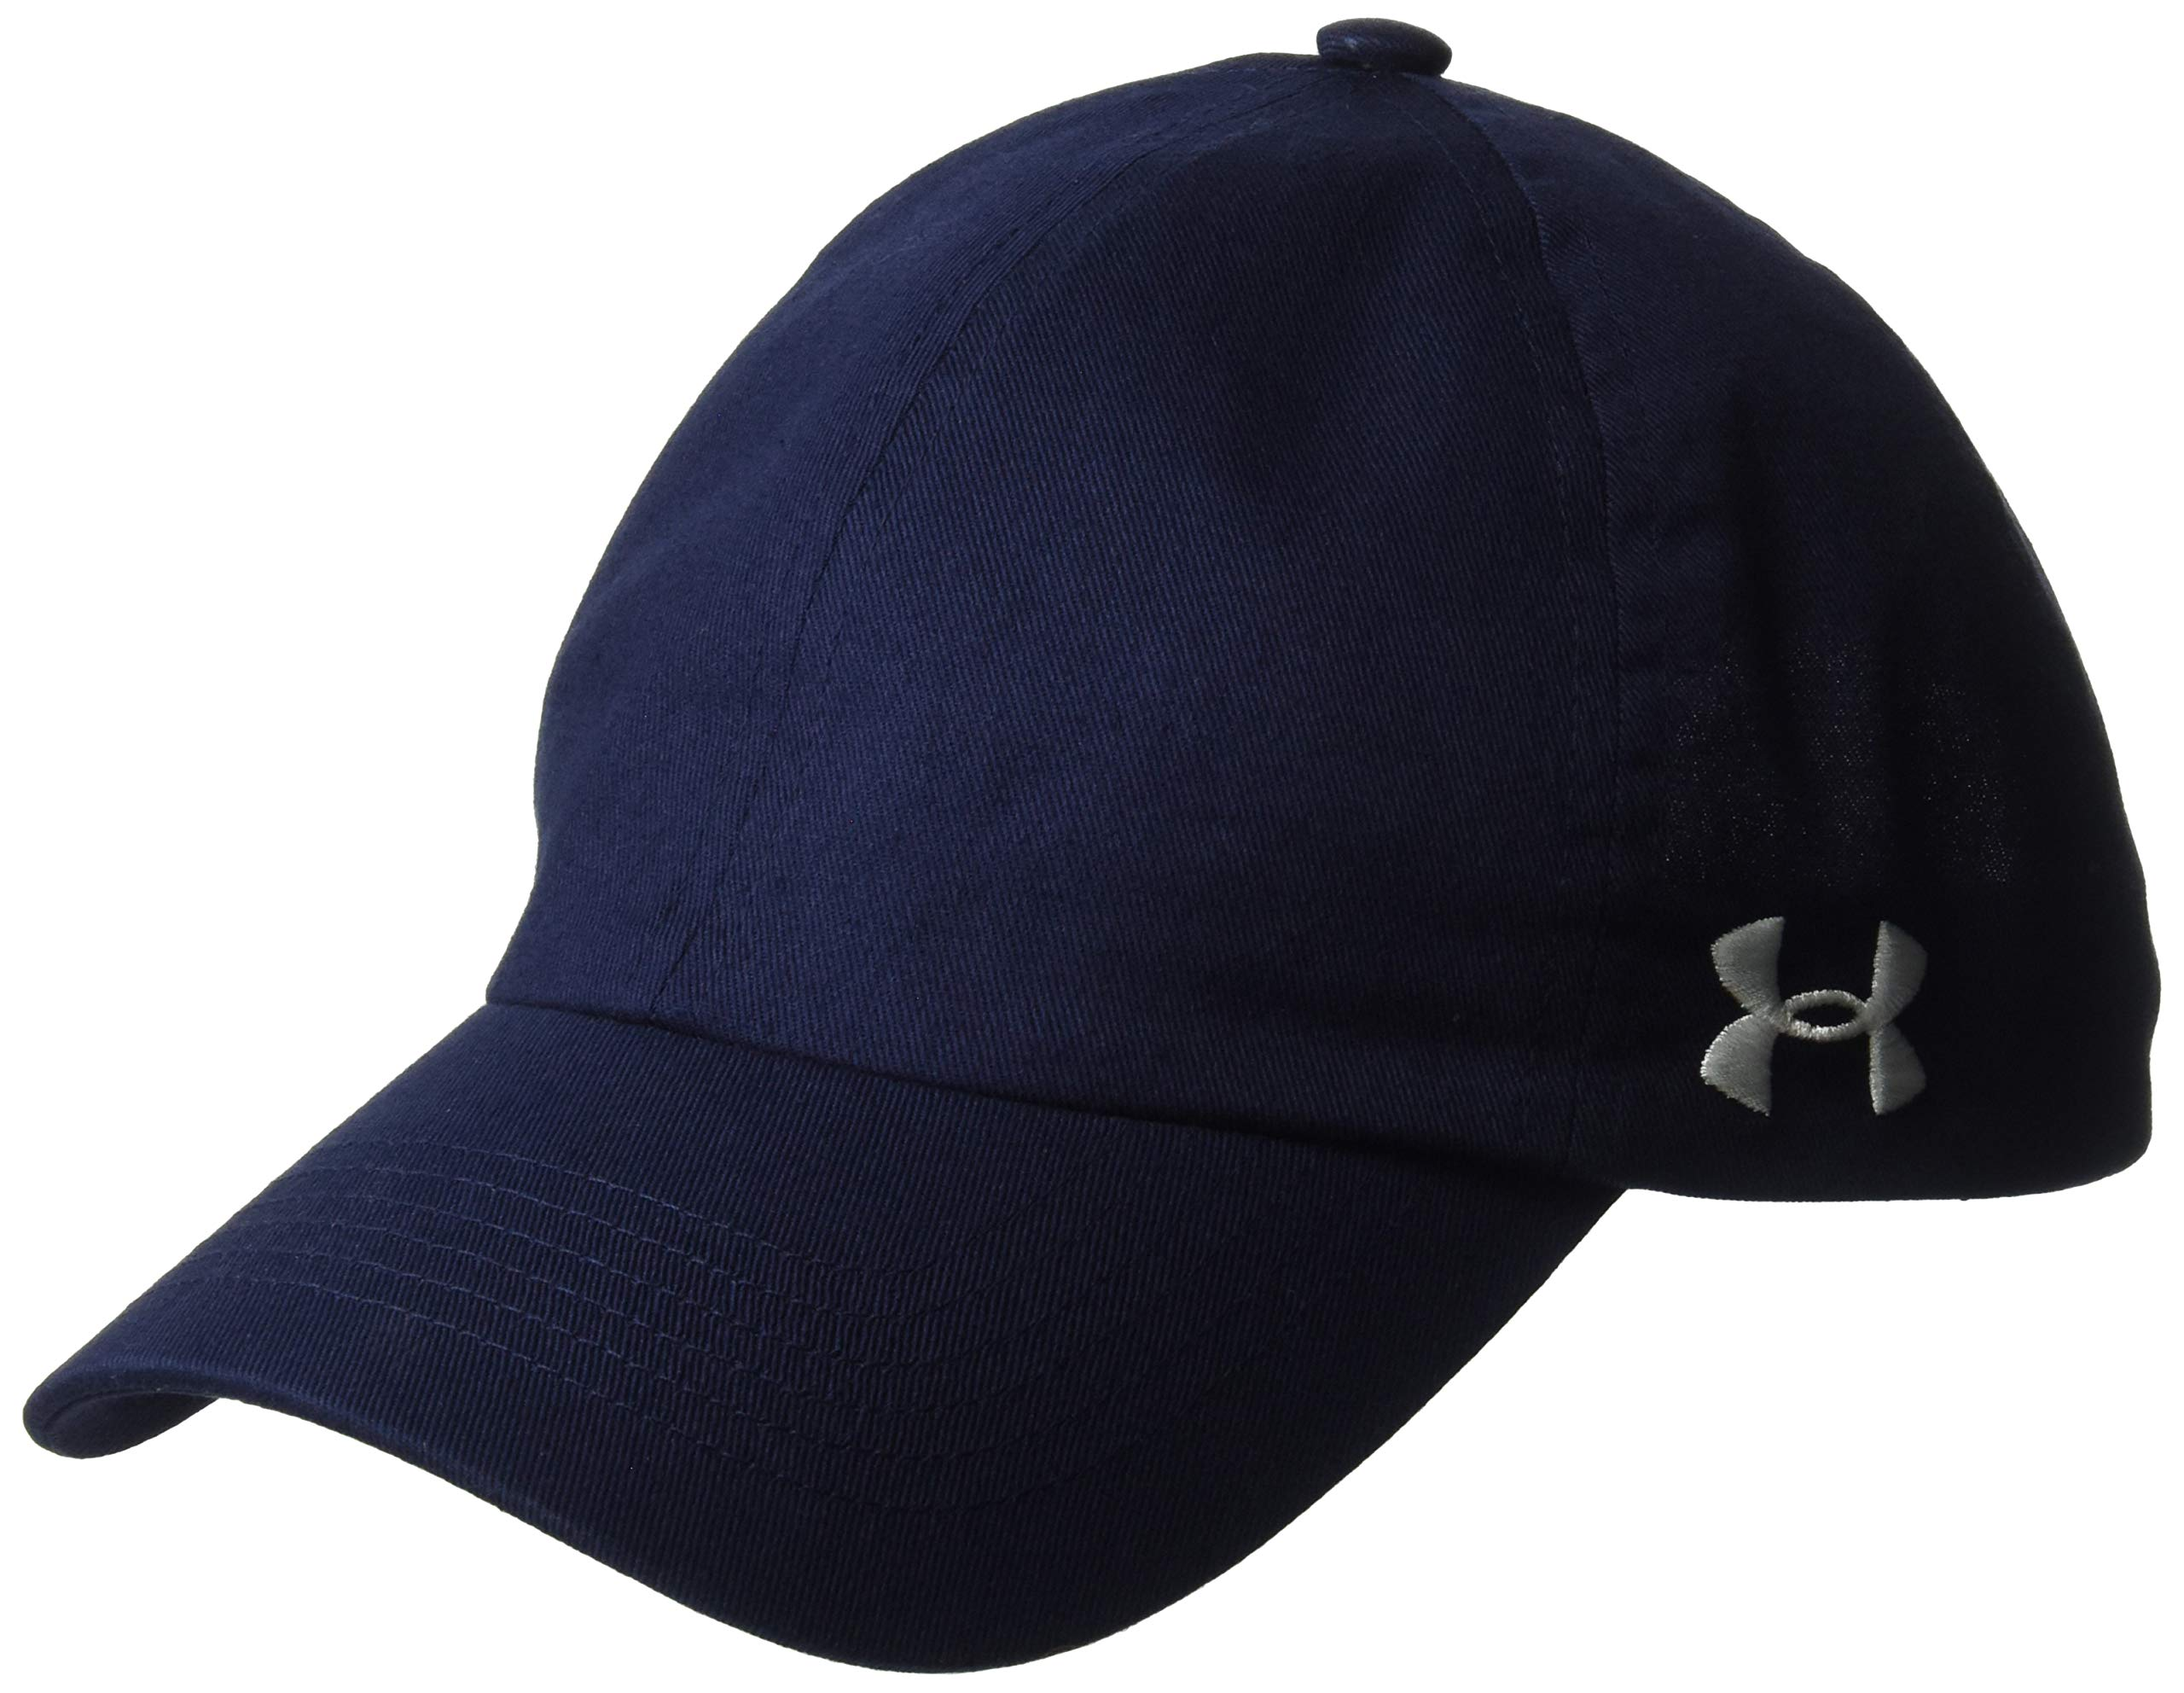 a35549a0c31 Under Armour Mens Chino adj - Under Armour   Hats   Caps   Sports ...